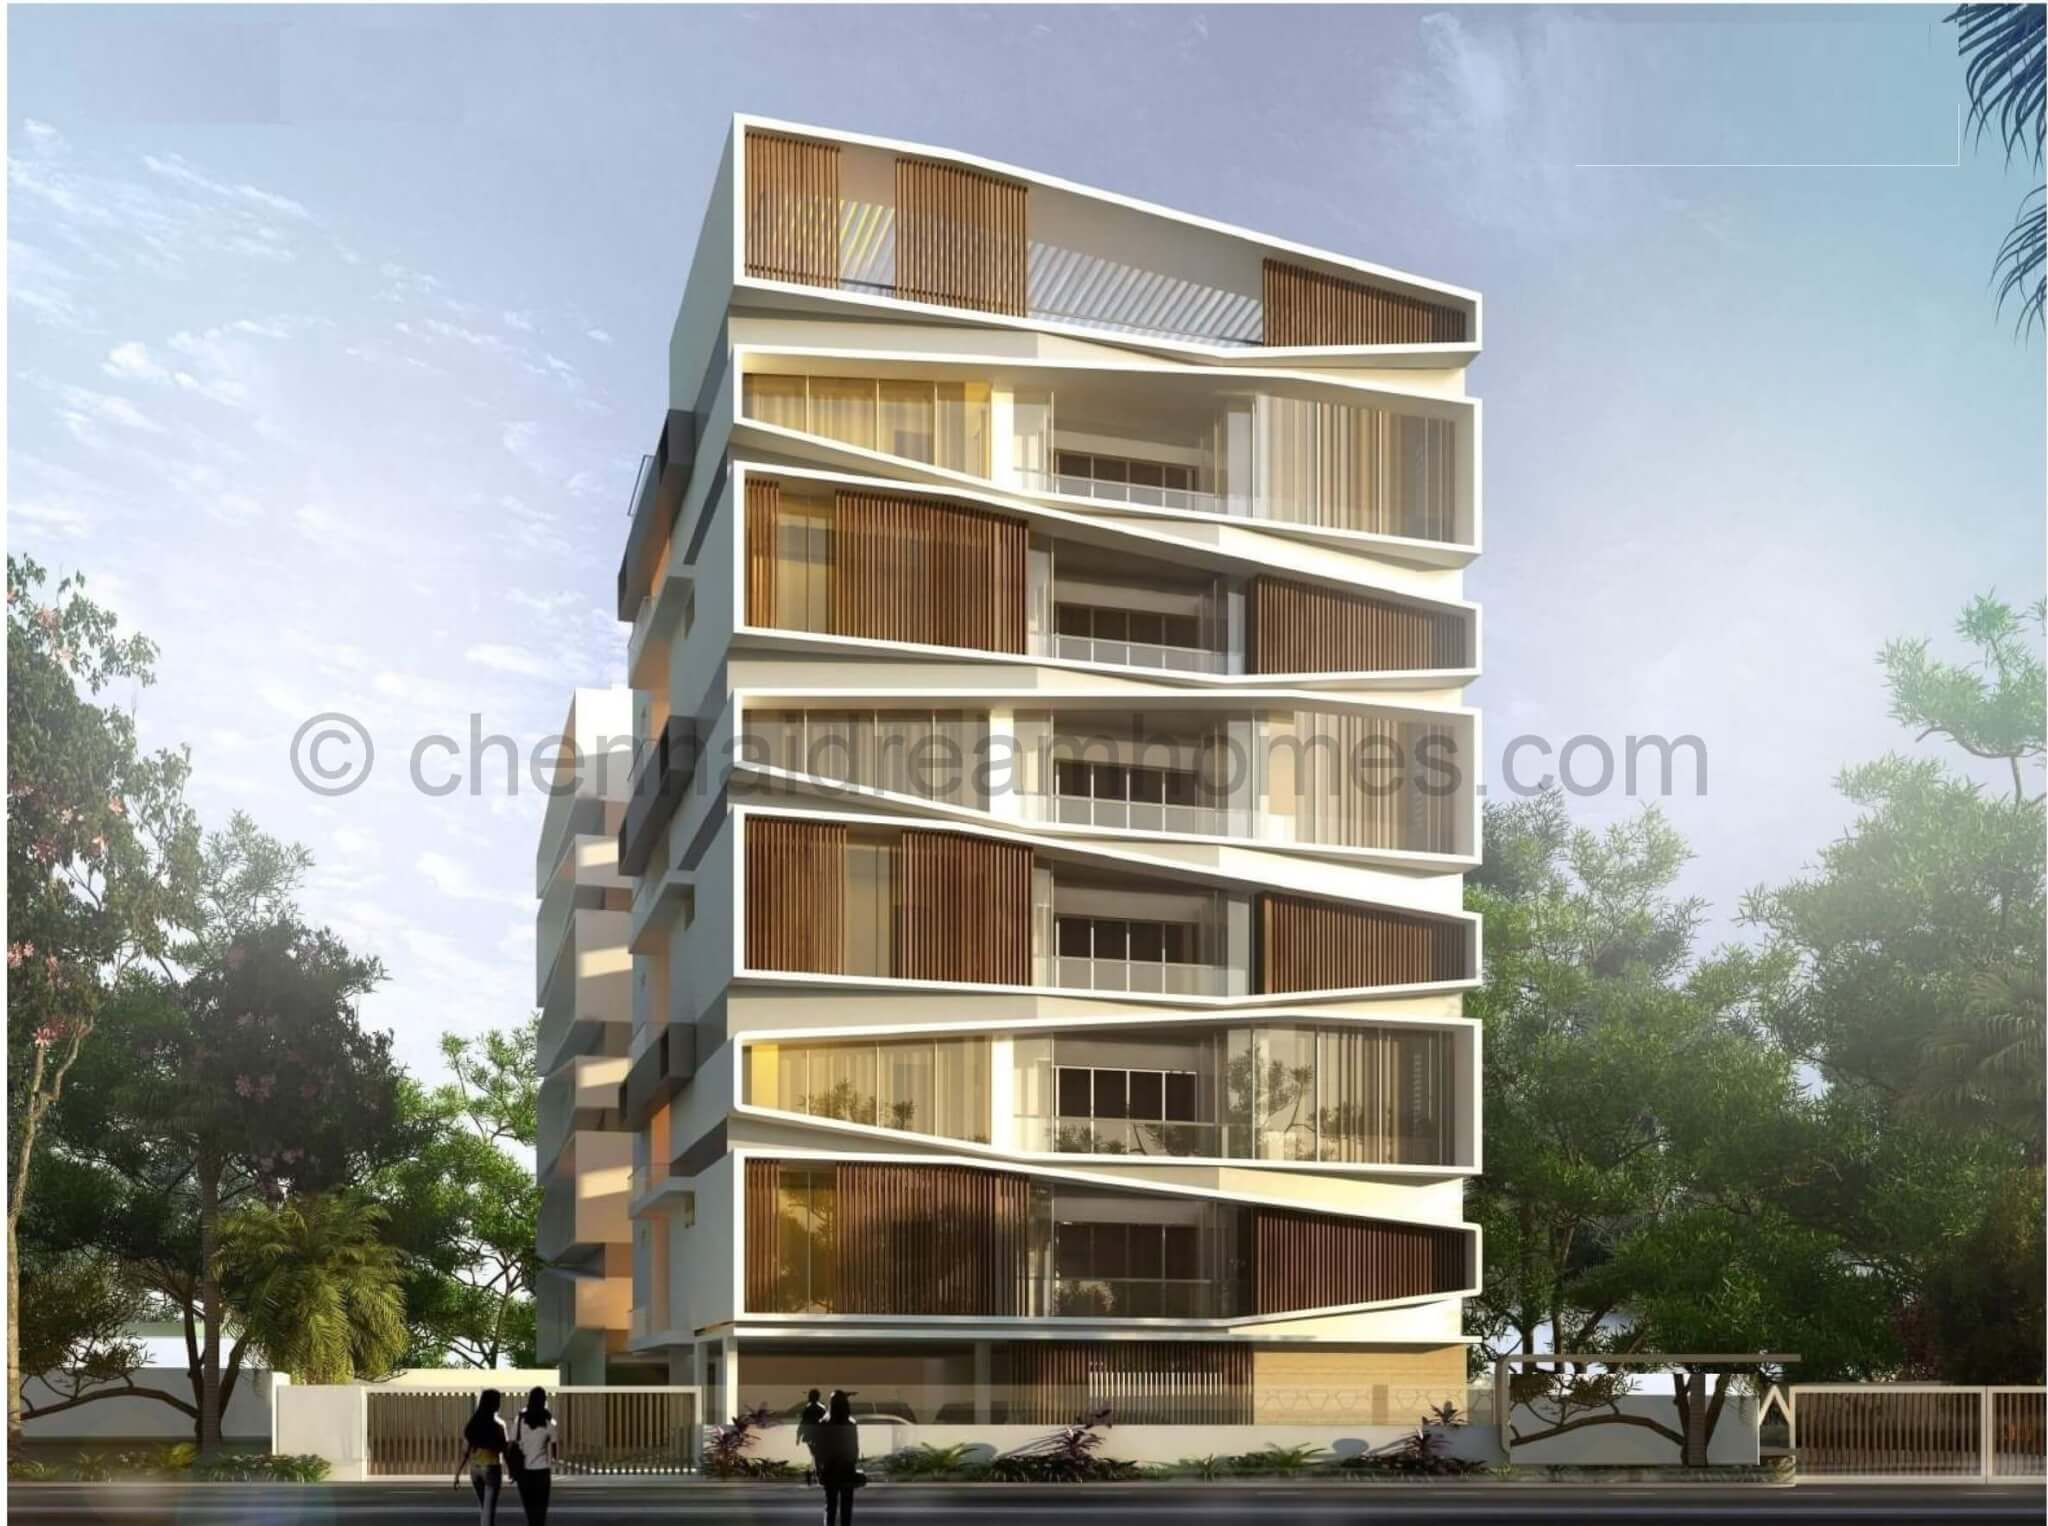 Apartments For Sale In Chennai Porur